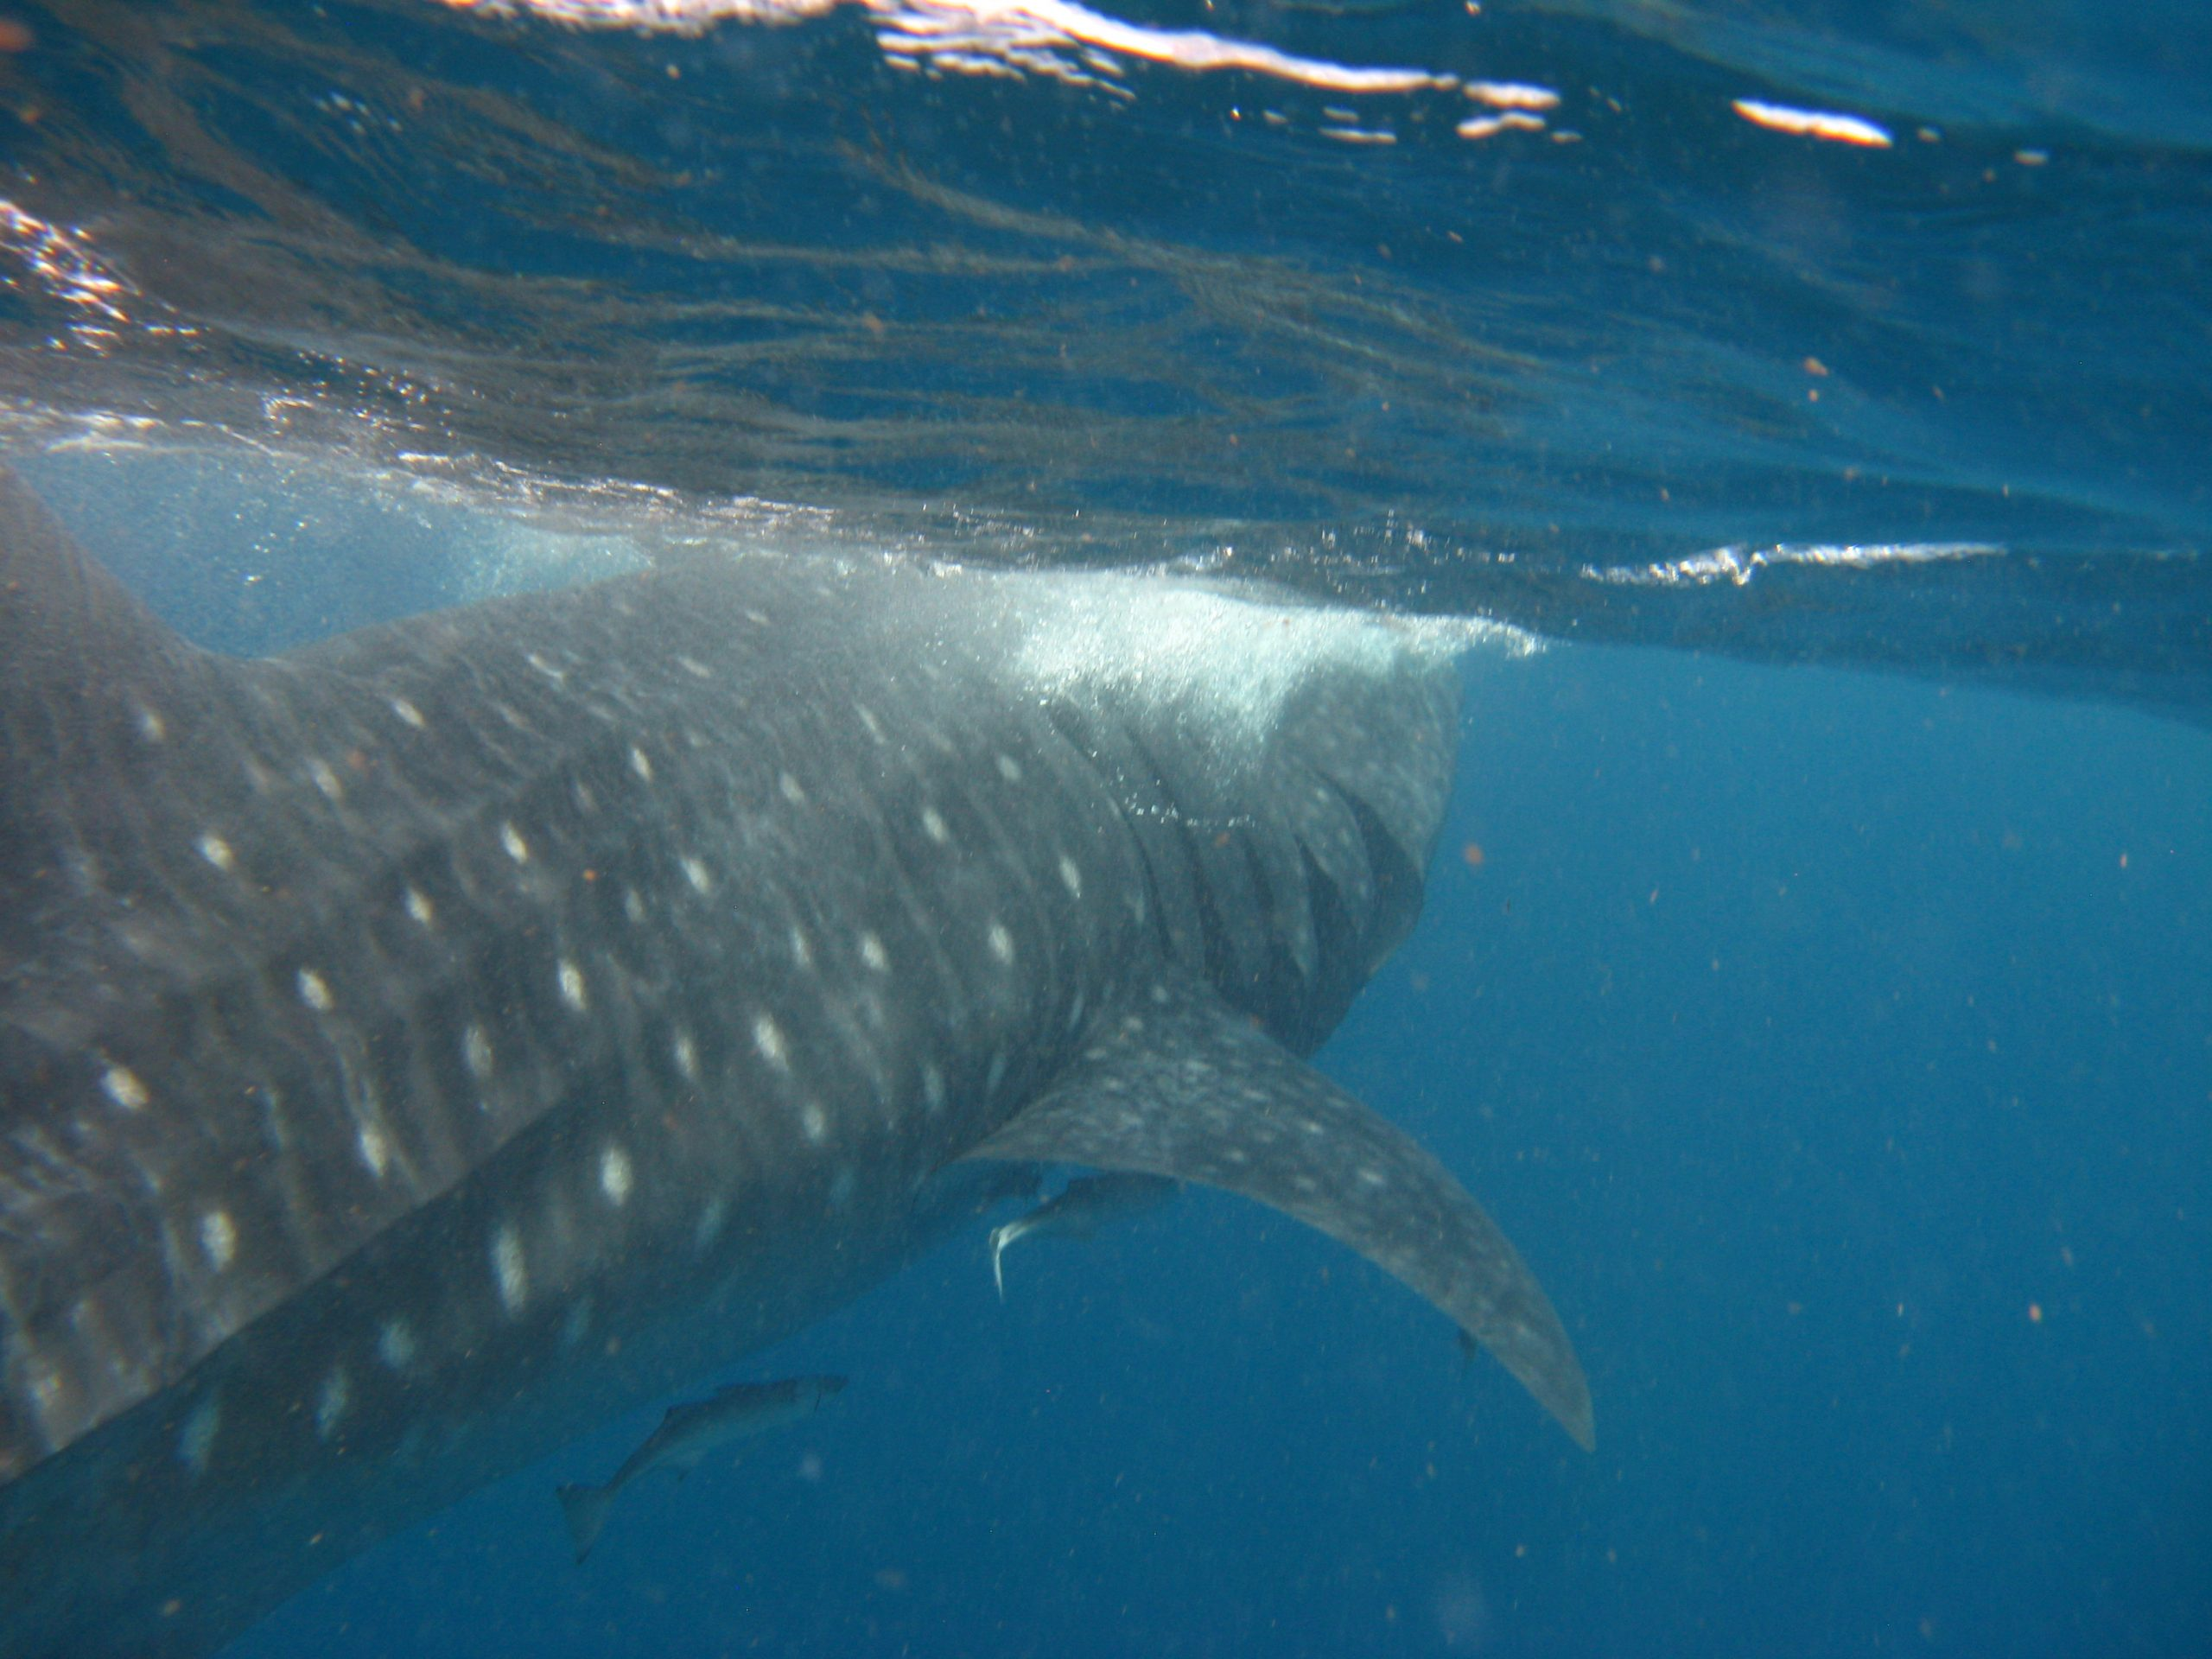 Swimming with a whale shark near Isla Mujeres, Mexico.